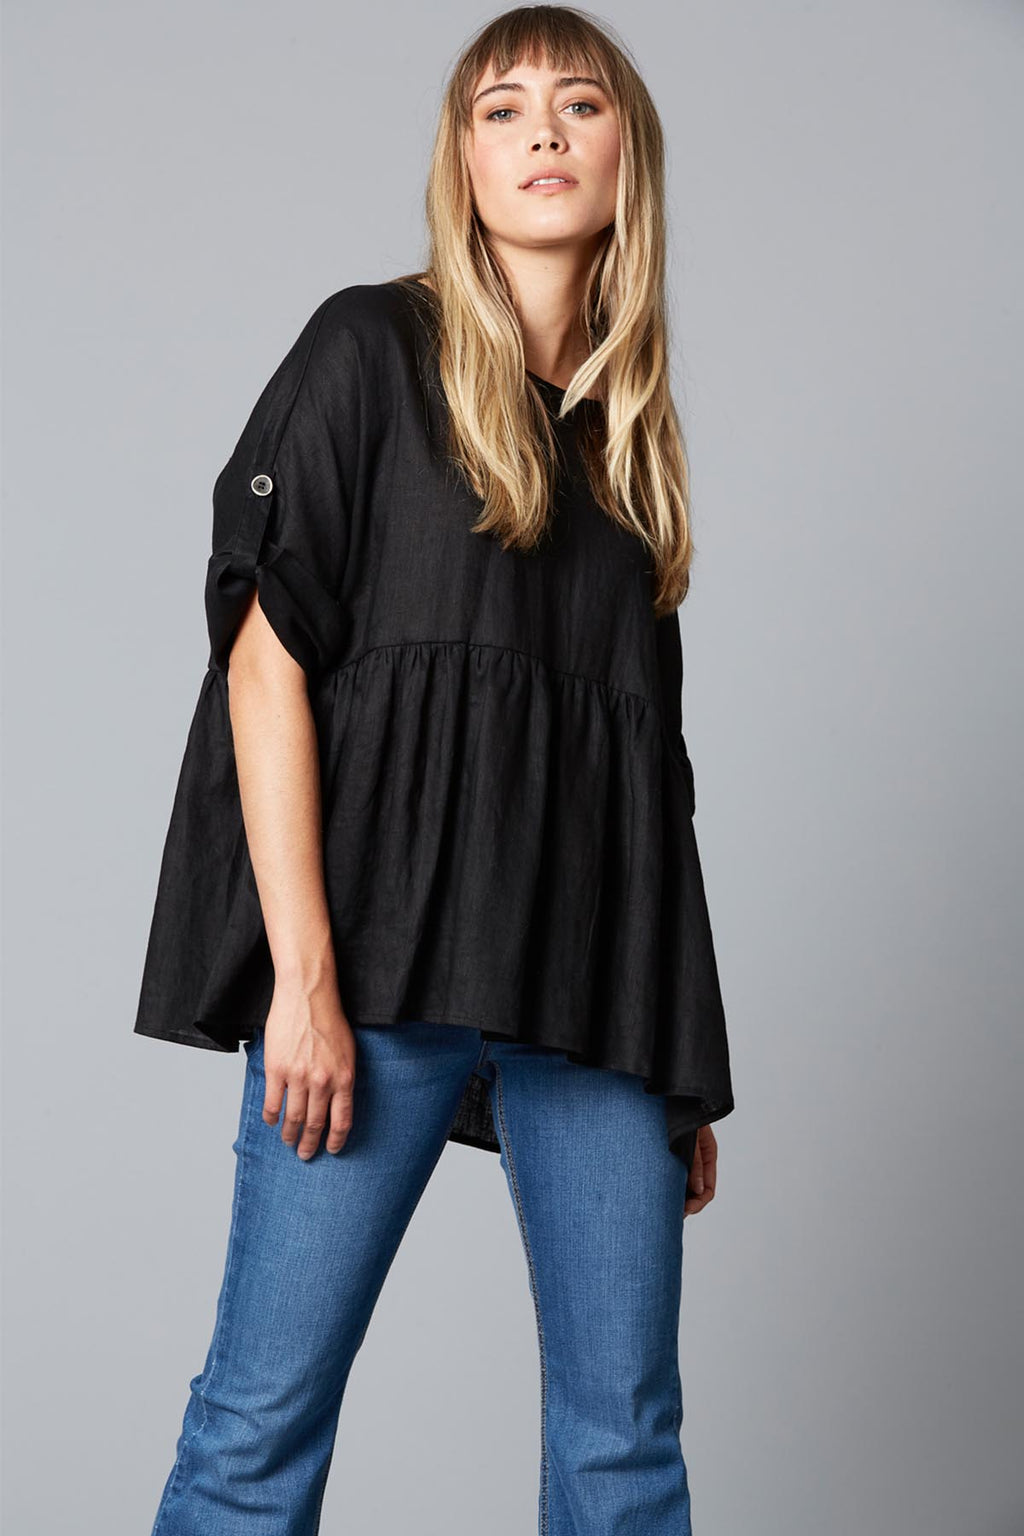 Eve Top - Black - The Bohemian Corner